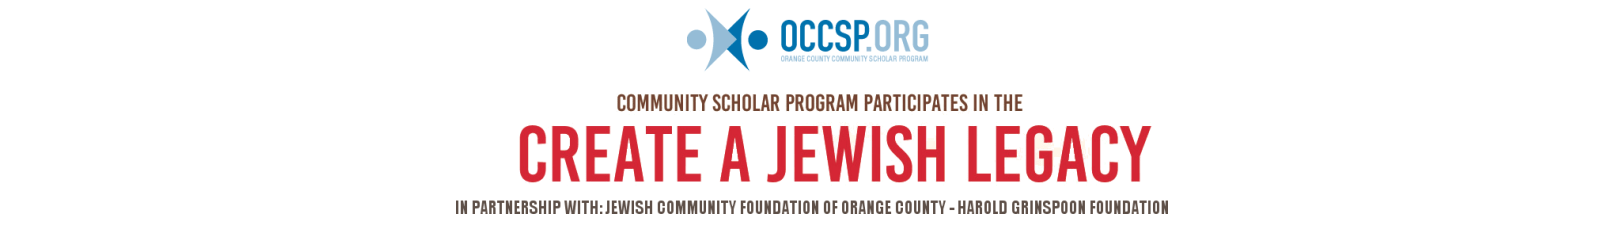 cropped-occsp-logo-7.png